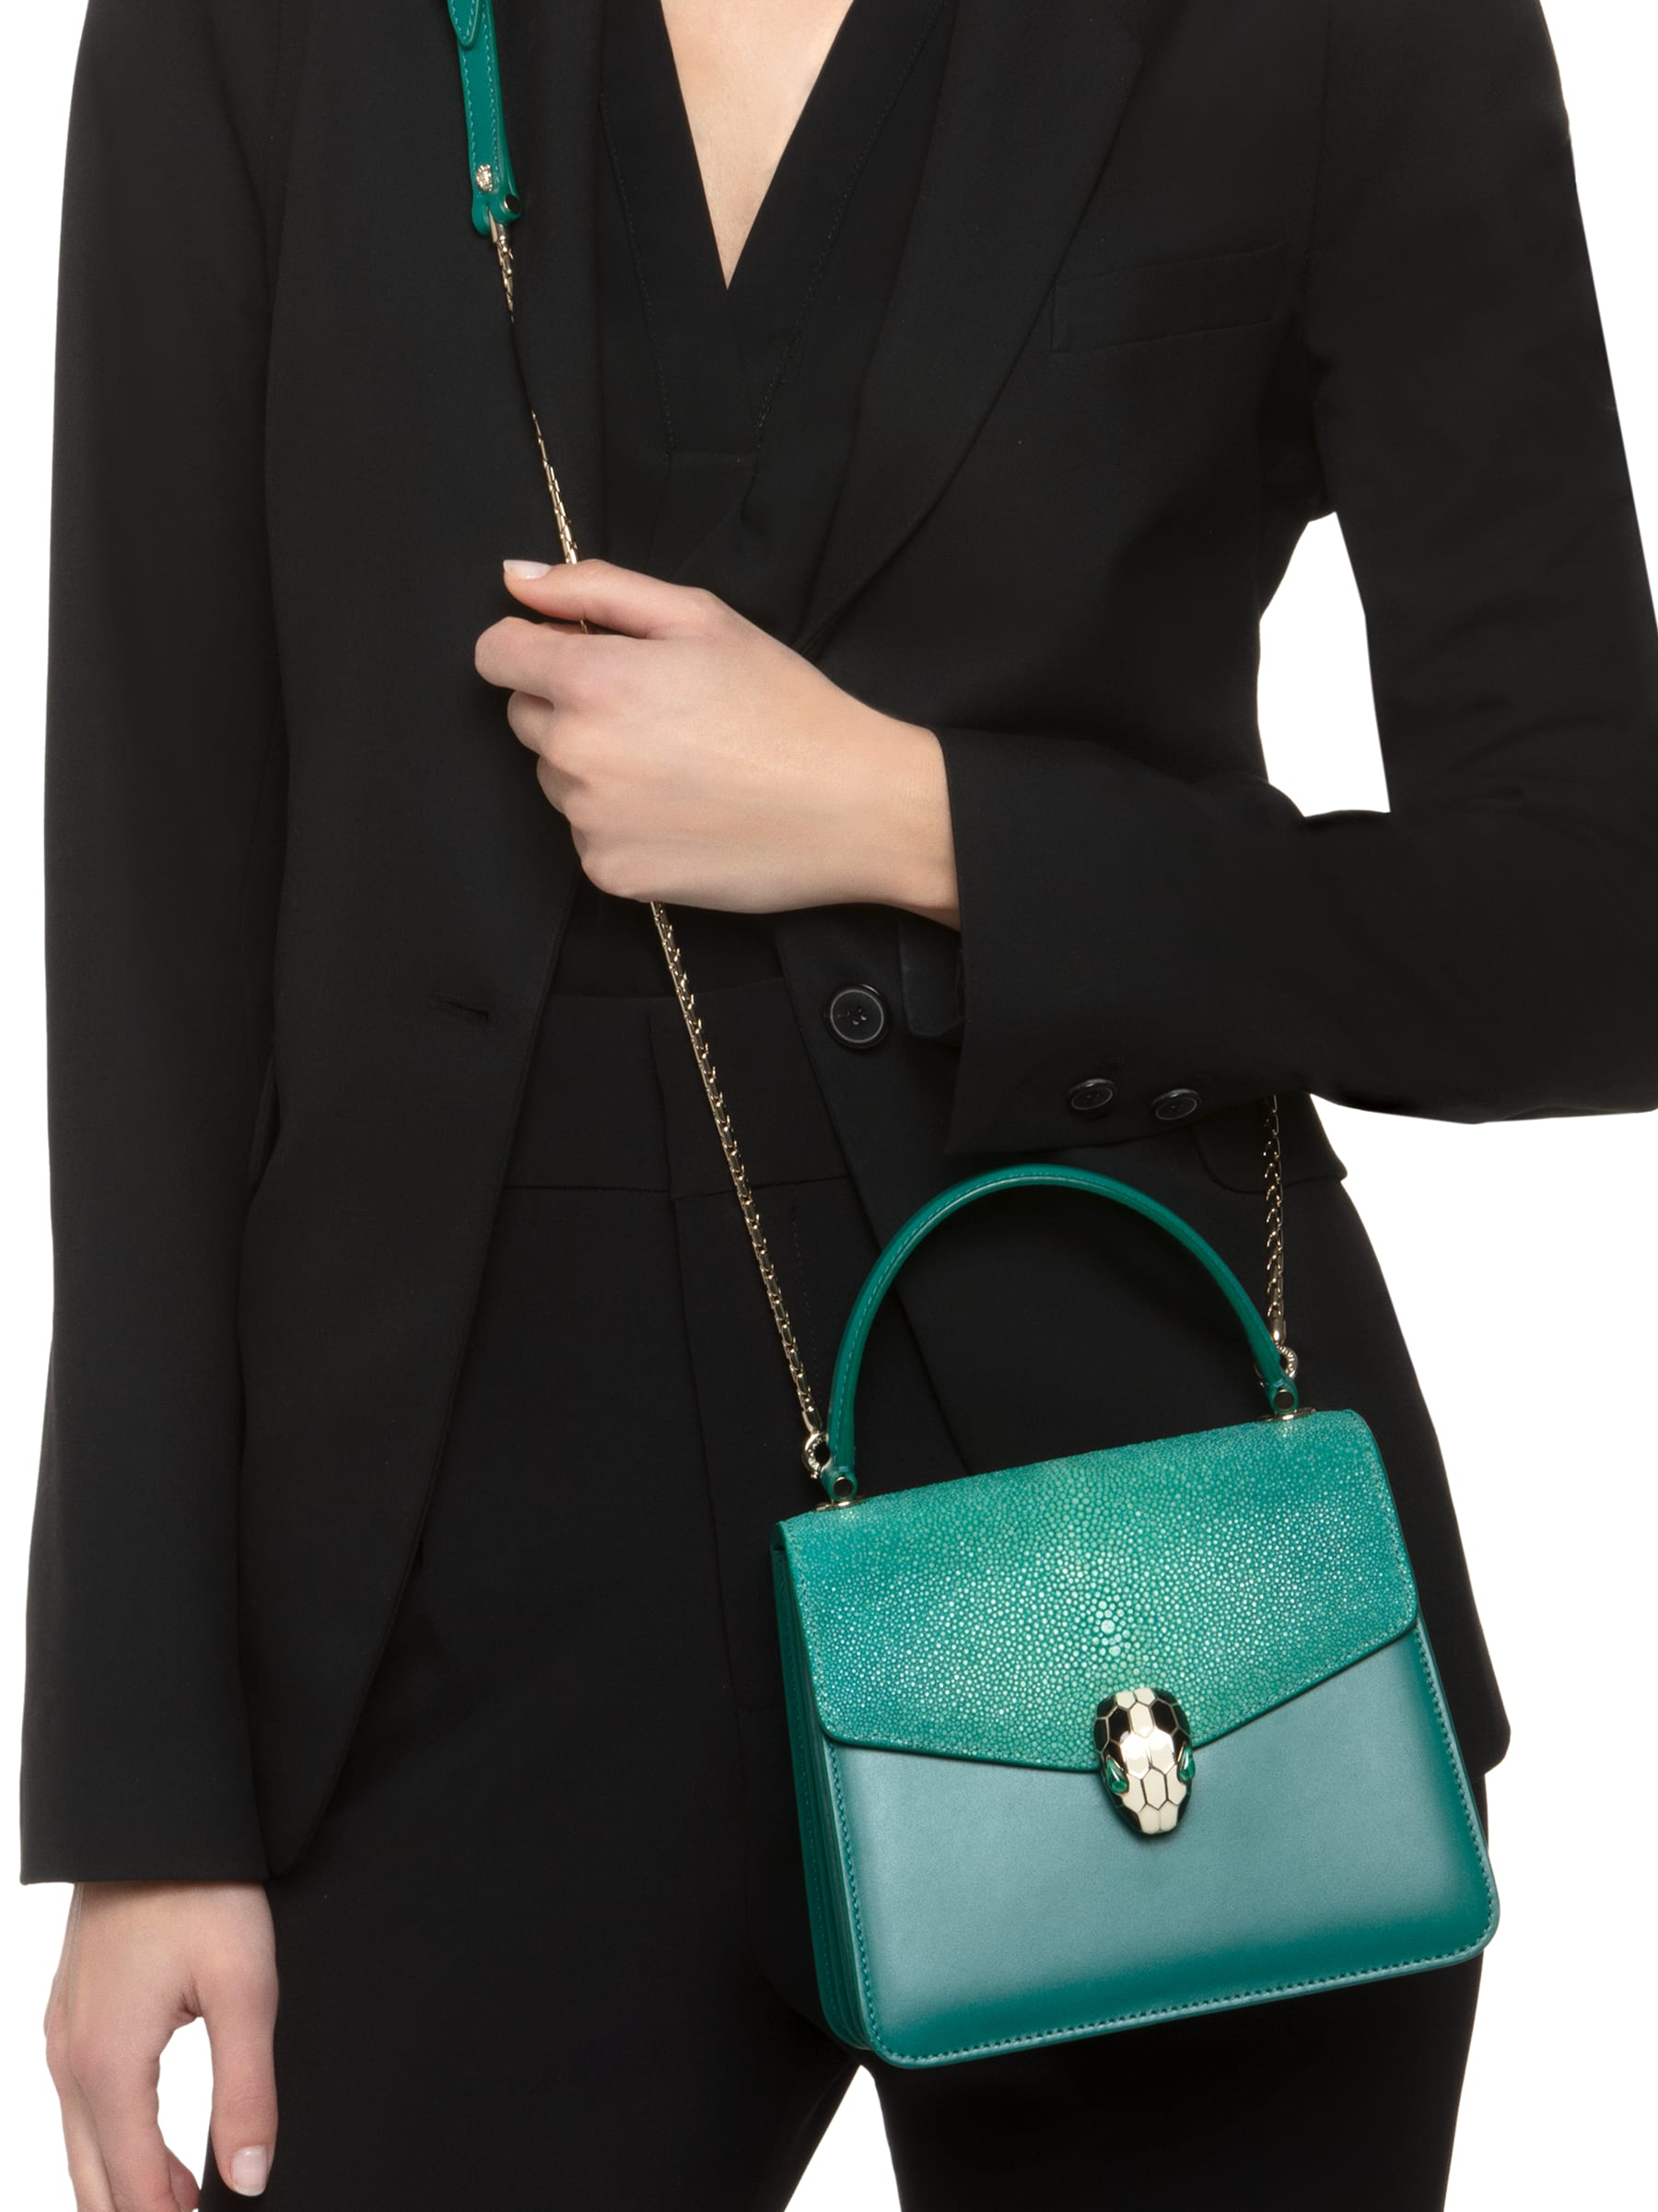 Flap cover bag Serpenti Forever in emerald green galuchat skin and emerald green calf leather. 282373 image 4